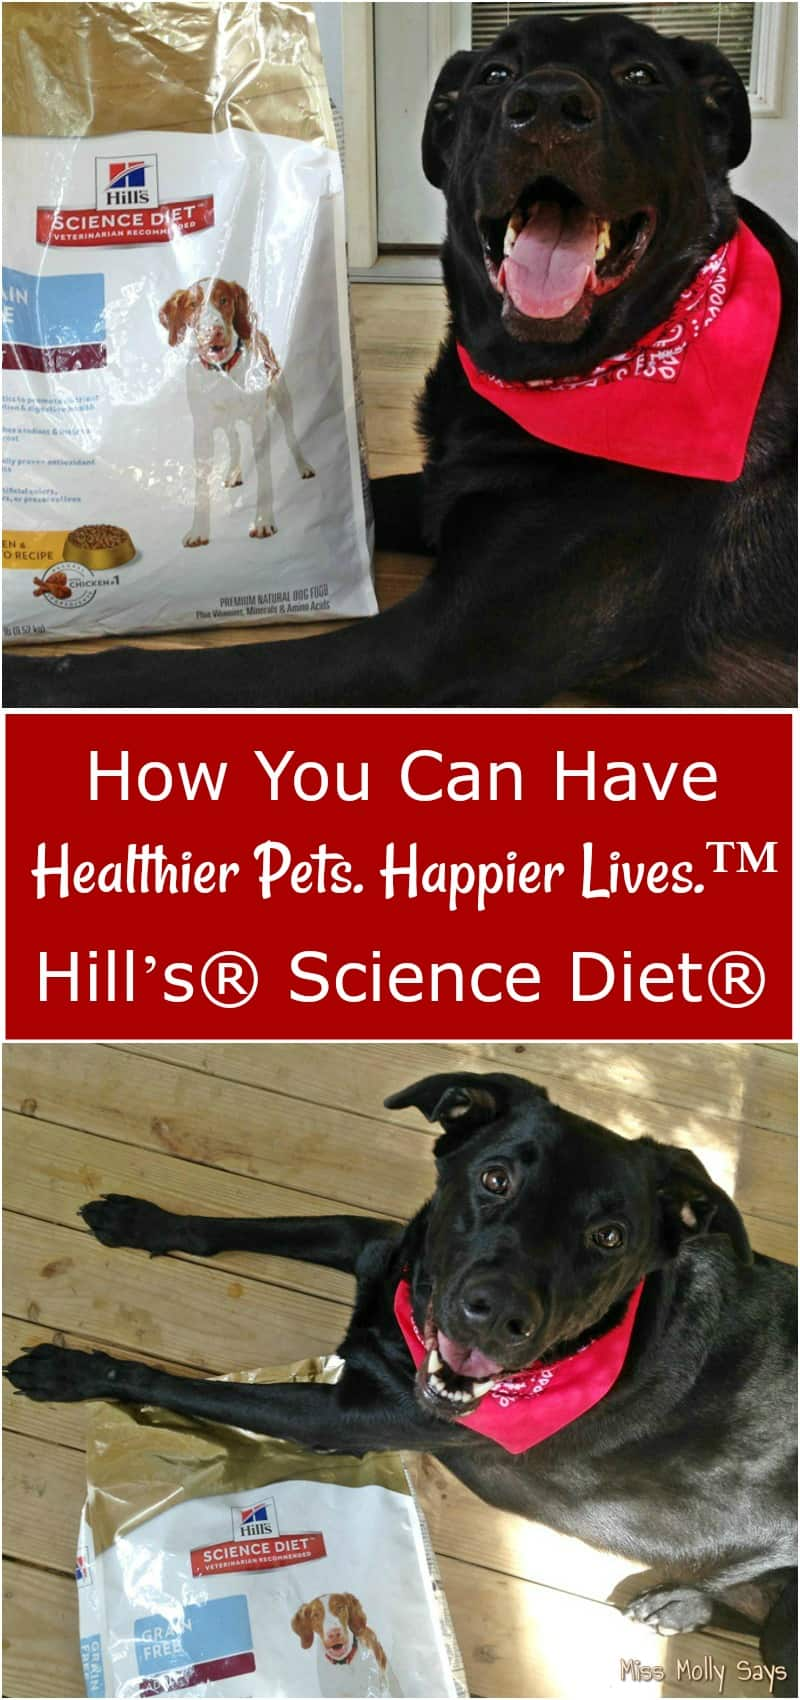 I love my dogs and want them to have long happy lives! Find out how you can have Healthier Pets. Happier Lives.™ - PLUS, enter the PAWSOME Hill's Pet Nutrition Sweepstakes for a chance to win $100.00 to go towards your next vet checkup! AND, you can grab a $10 Rebate good on any purchase of 7 lbs or larger bag select Hill's® Science Diet® pet food! #HillsTransformingLives